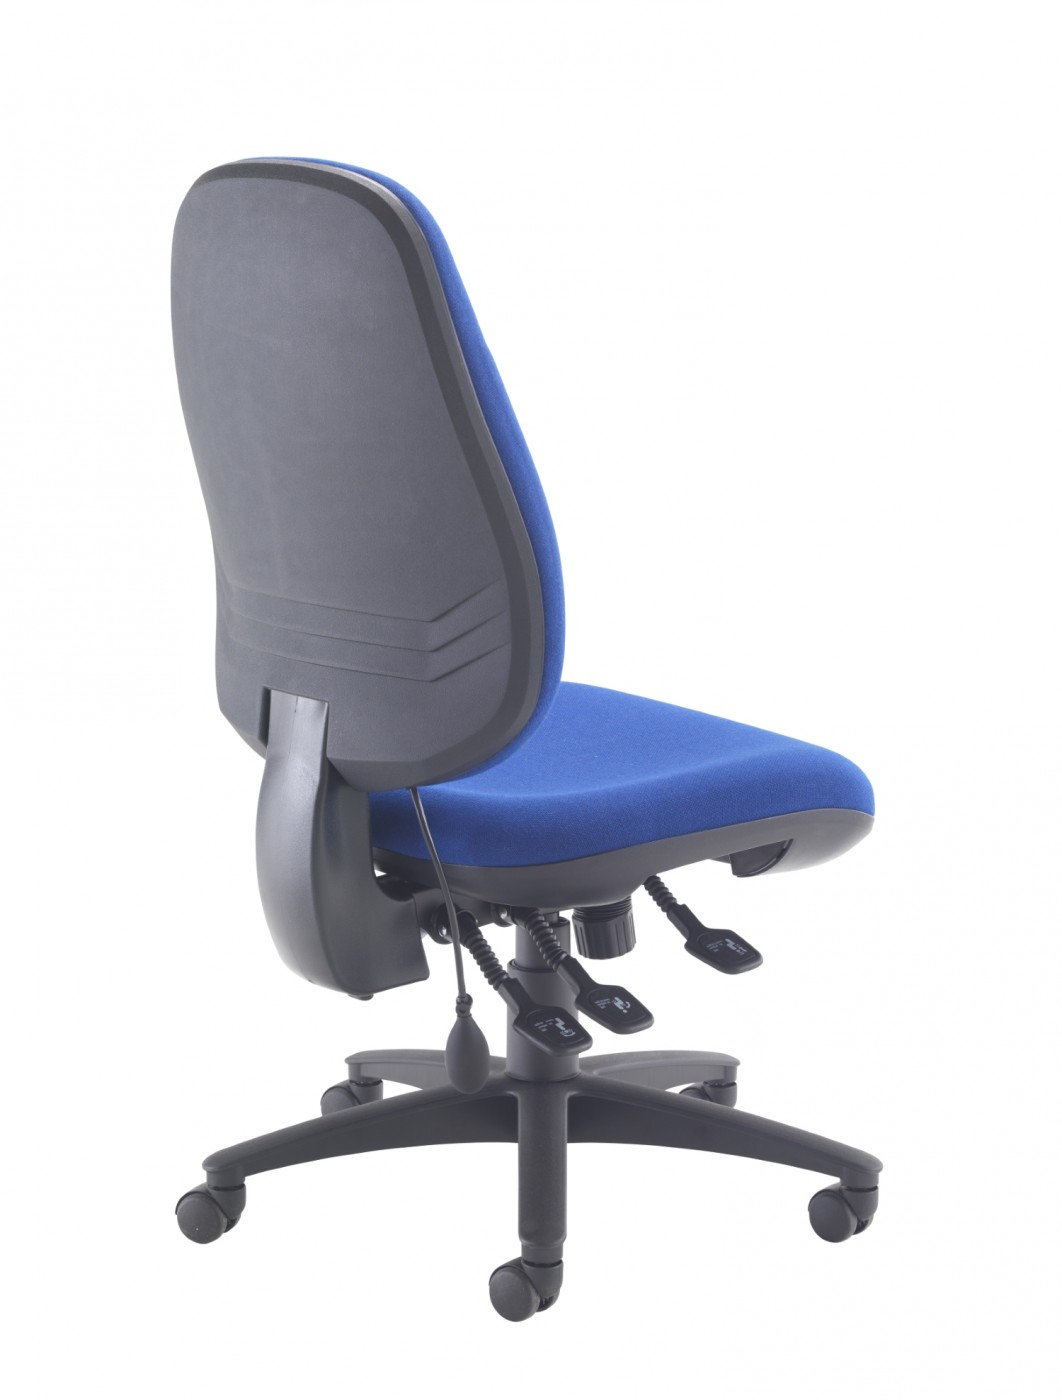 Awesome TC Office Concept Maxi Ergo Office Chair CH0808 In Blue   Enlarged View